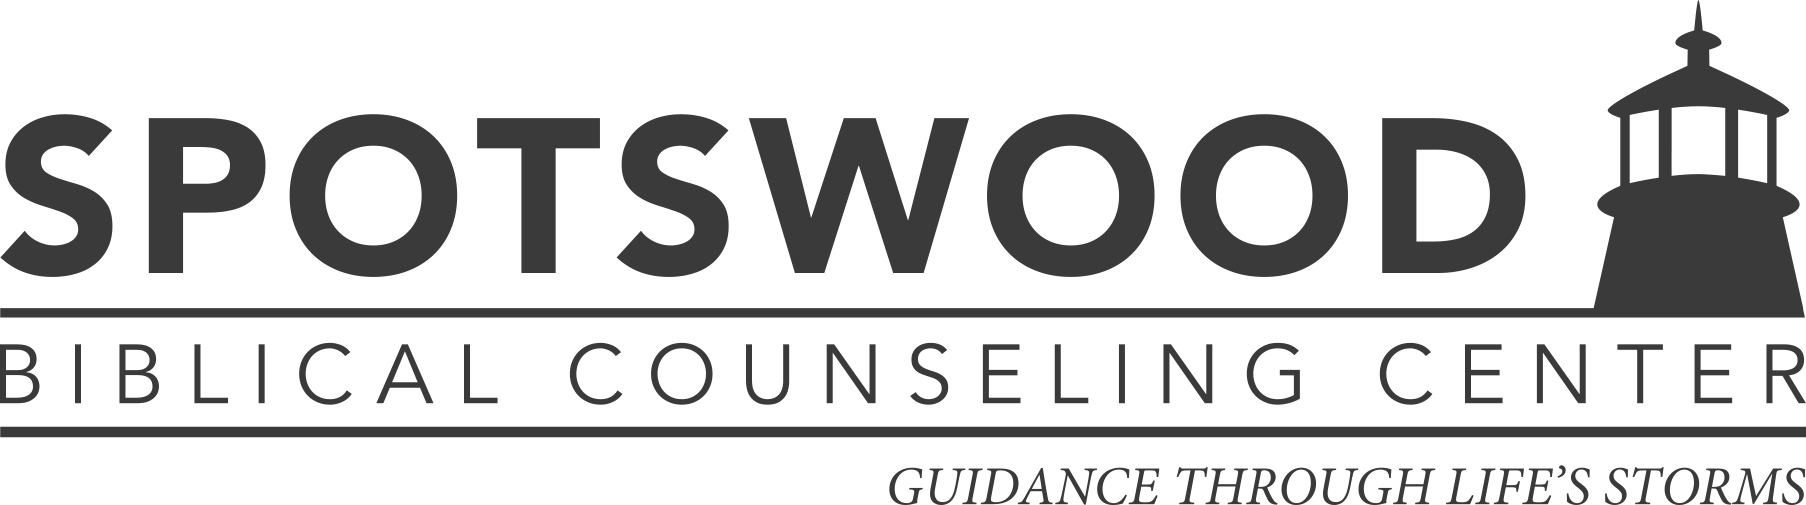 Spotswood Biblical Counseling Center